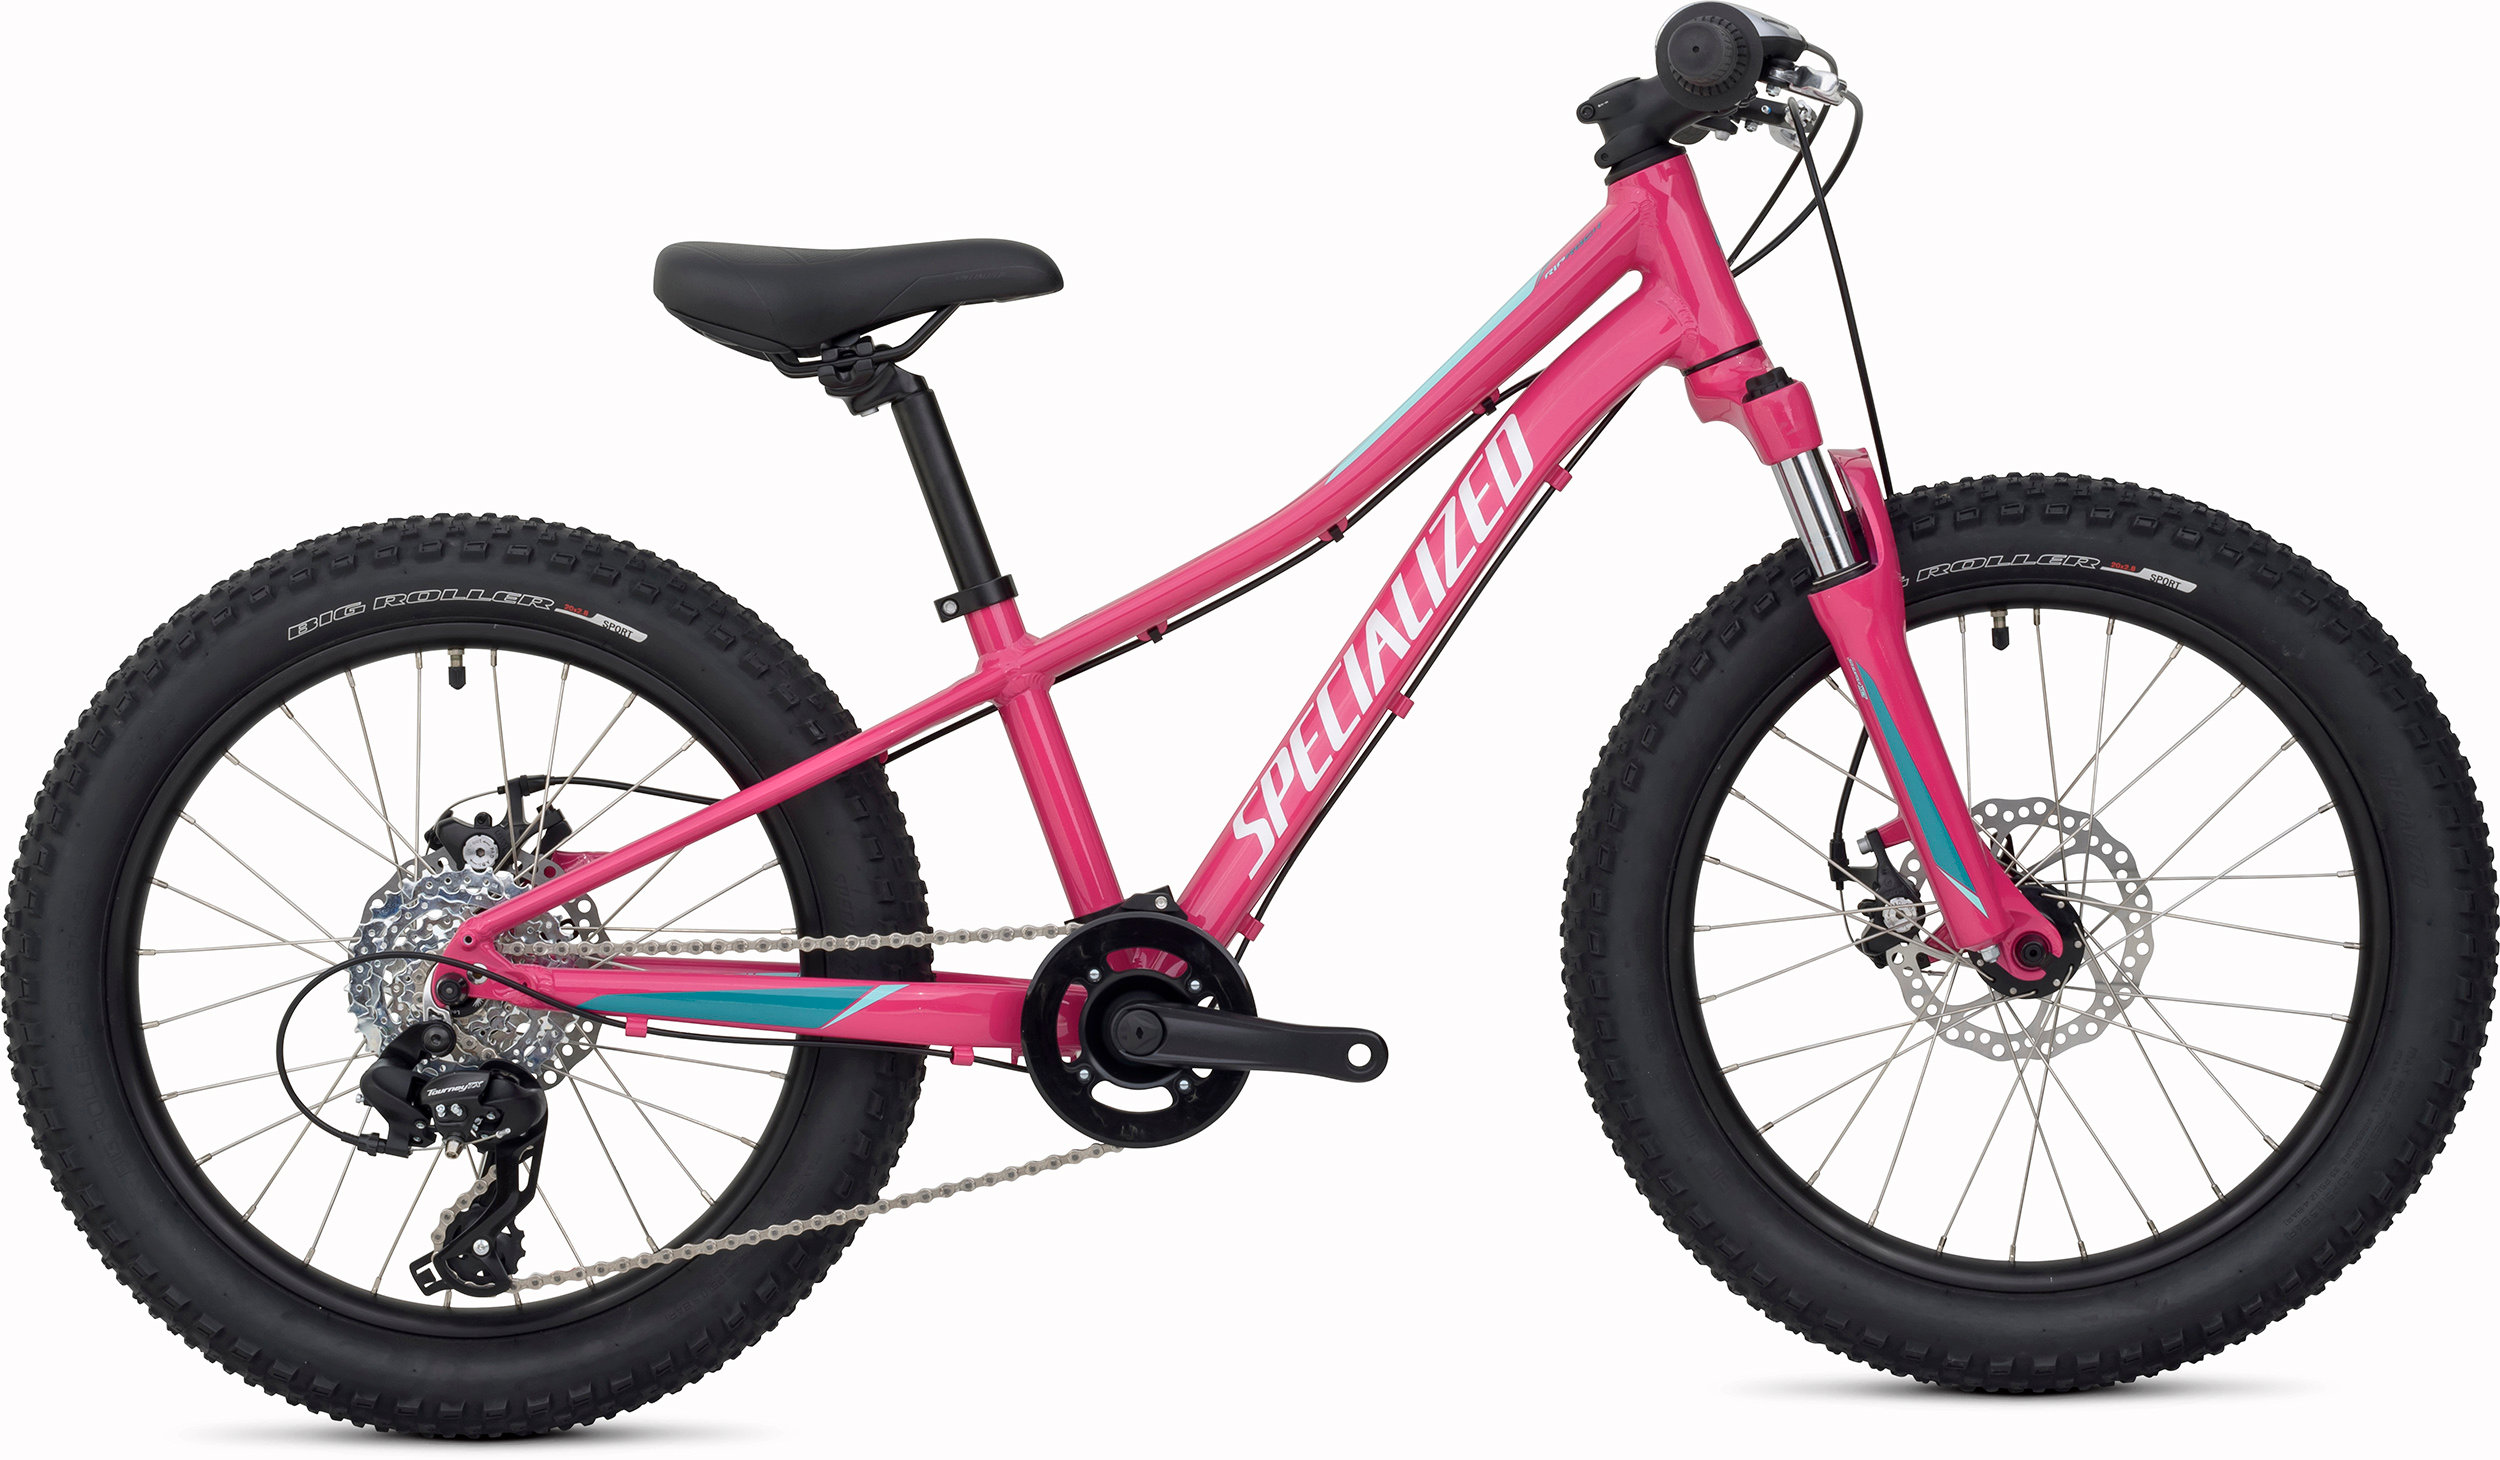 Specialized Riprock 20 Gloss Rainbow Flake Pink/Pearl Turquoise/Pearl Light Turquoise 9 - Bike Maniac